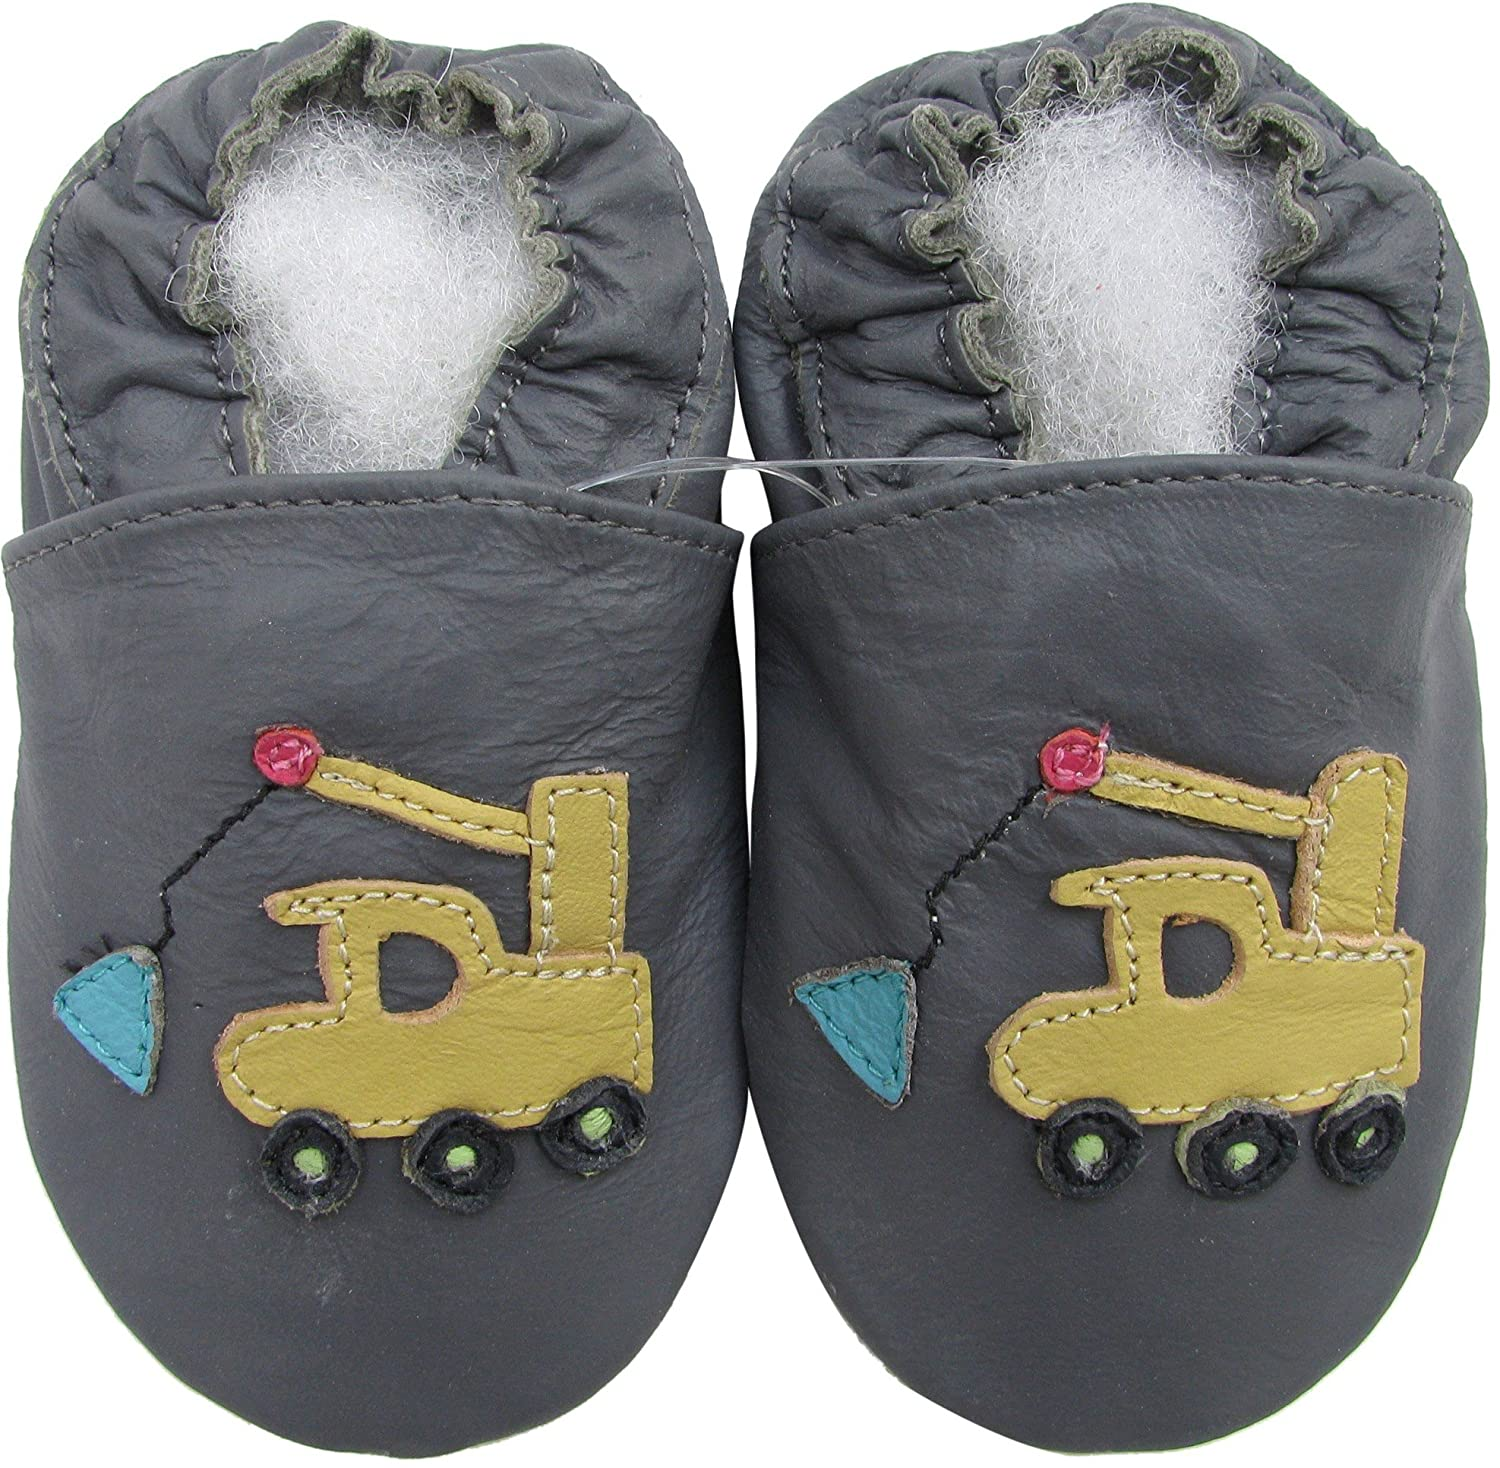 Carozoo Crane Dark Grey S Unisex Baby Soft Sole Leather Shoes